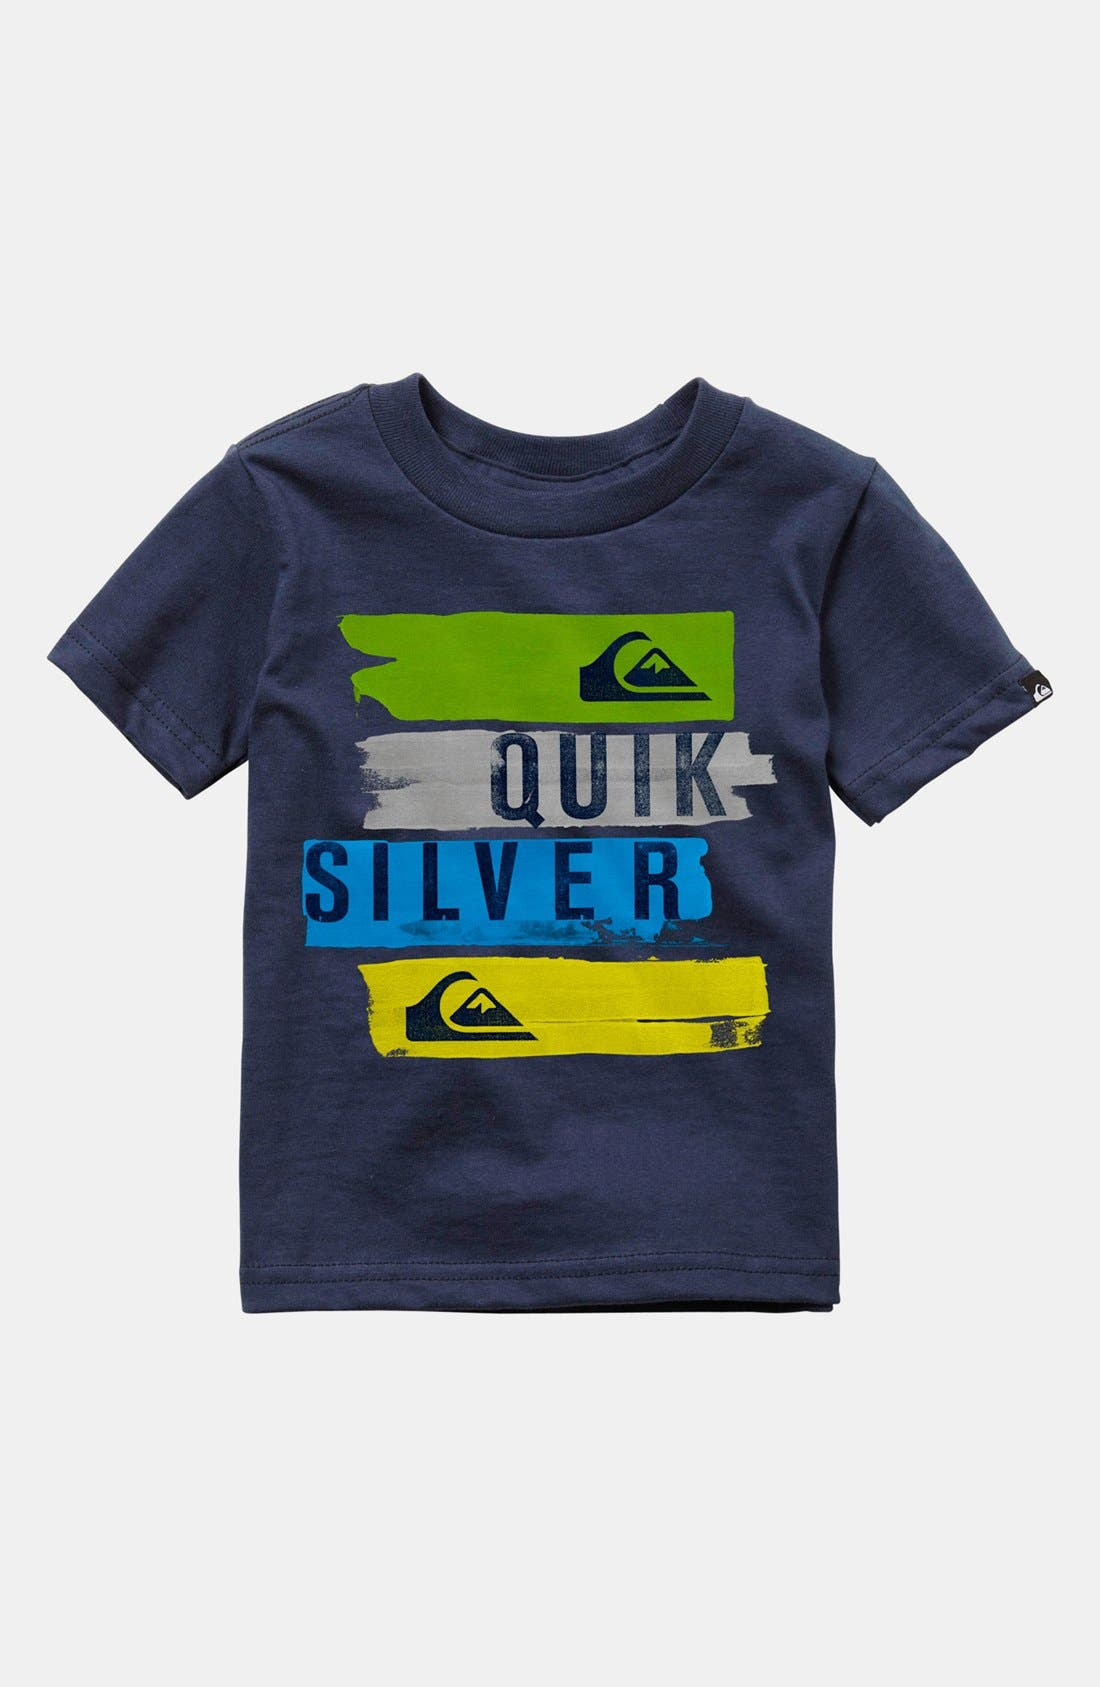 Alternate Image 1 Selected - Quiksilver 'Mix Up' T-Shirt (Toddler Boys)